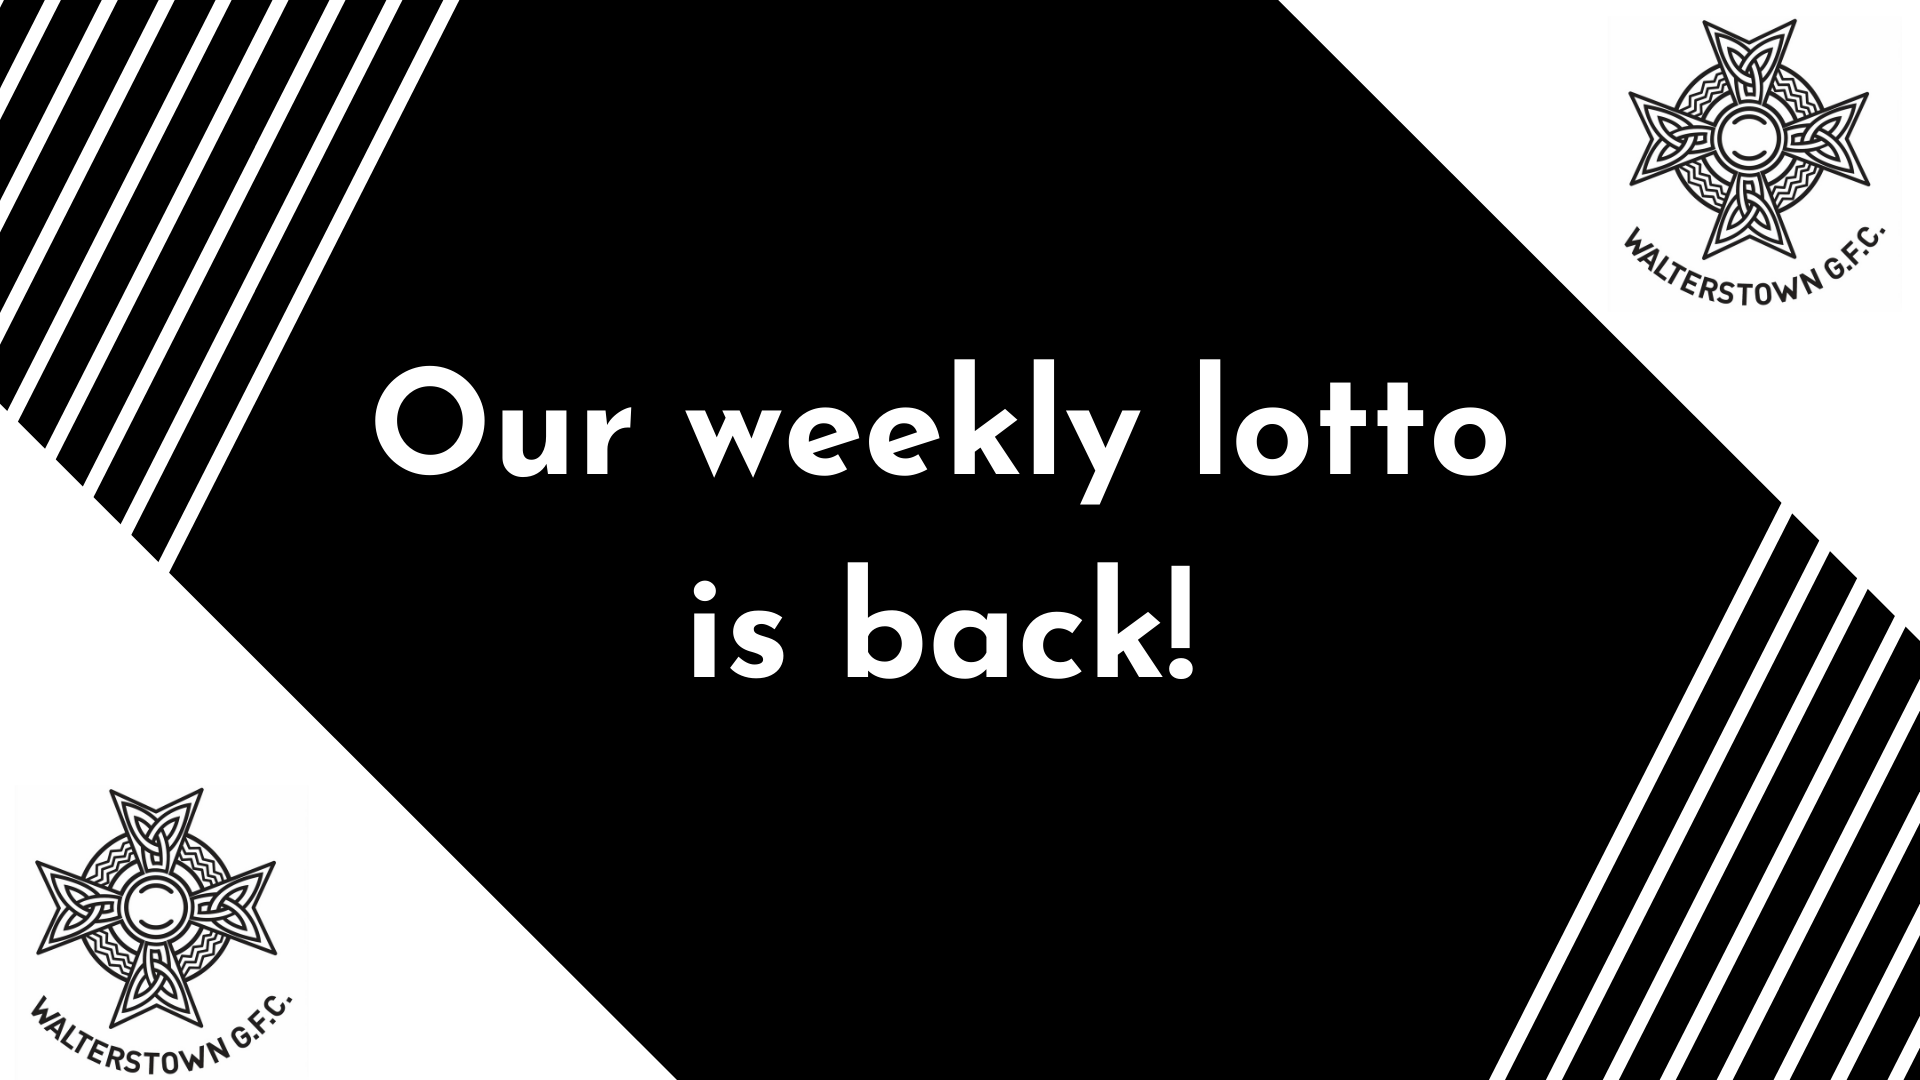 Walterstown Lotto Back